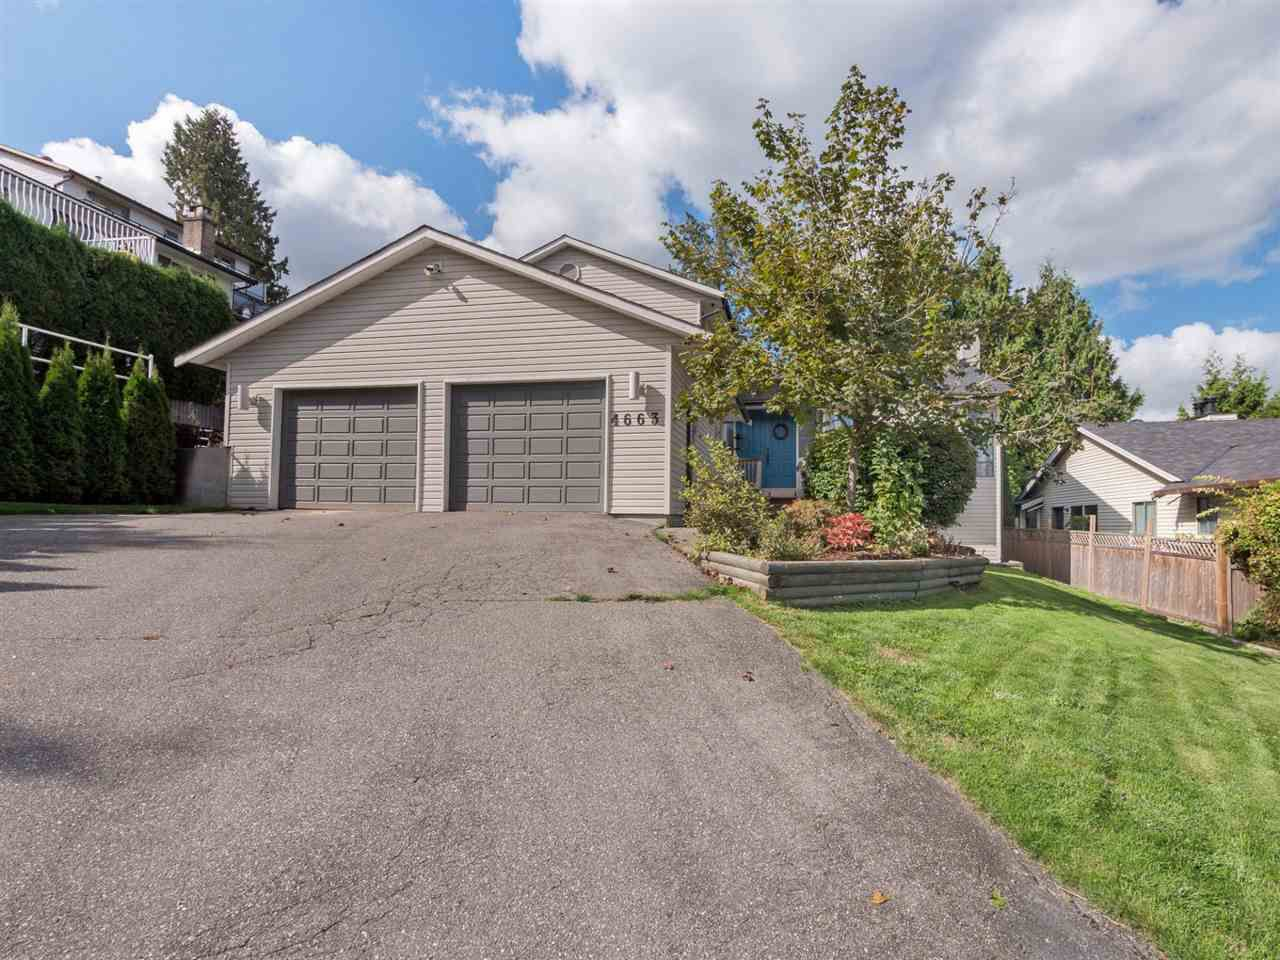 Main Photo: 4663 207B Street in Langley: Langley City House for sale : MLS®# R2307715